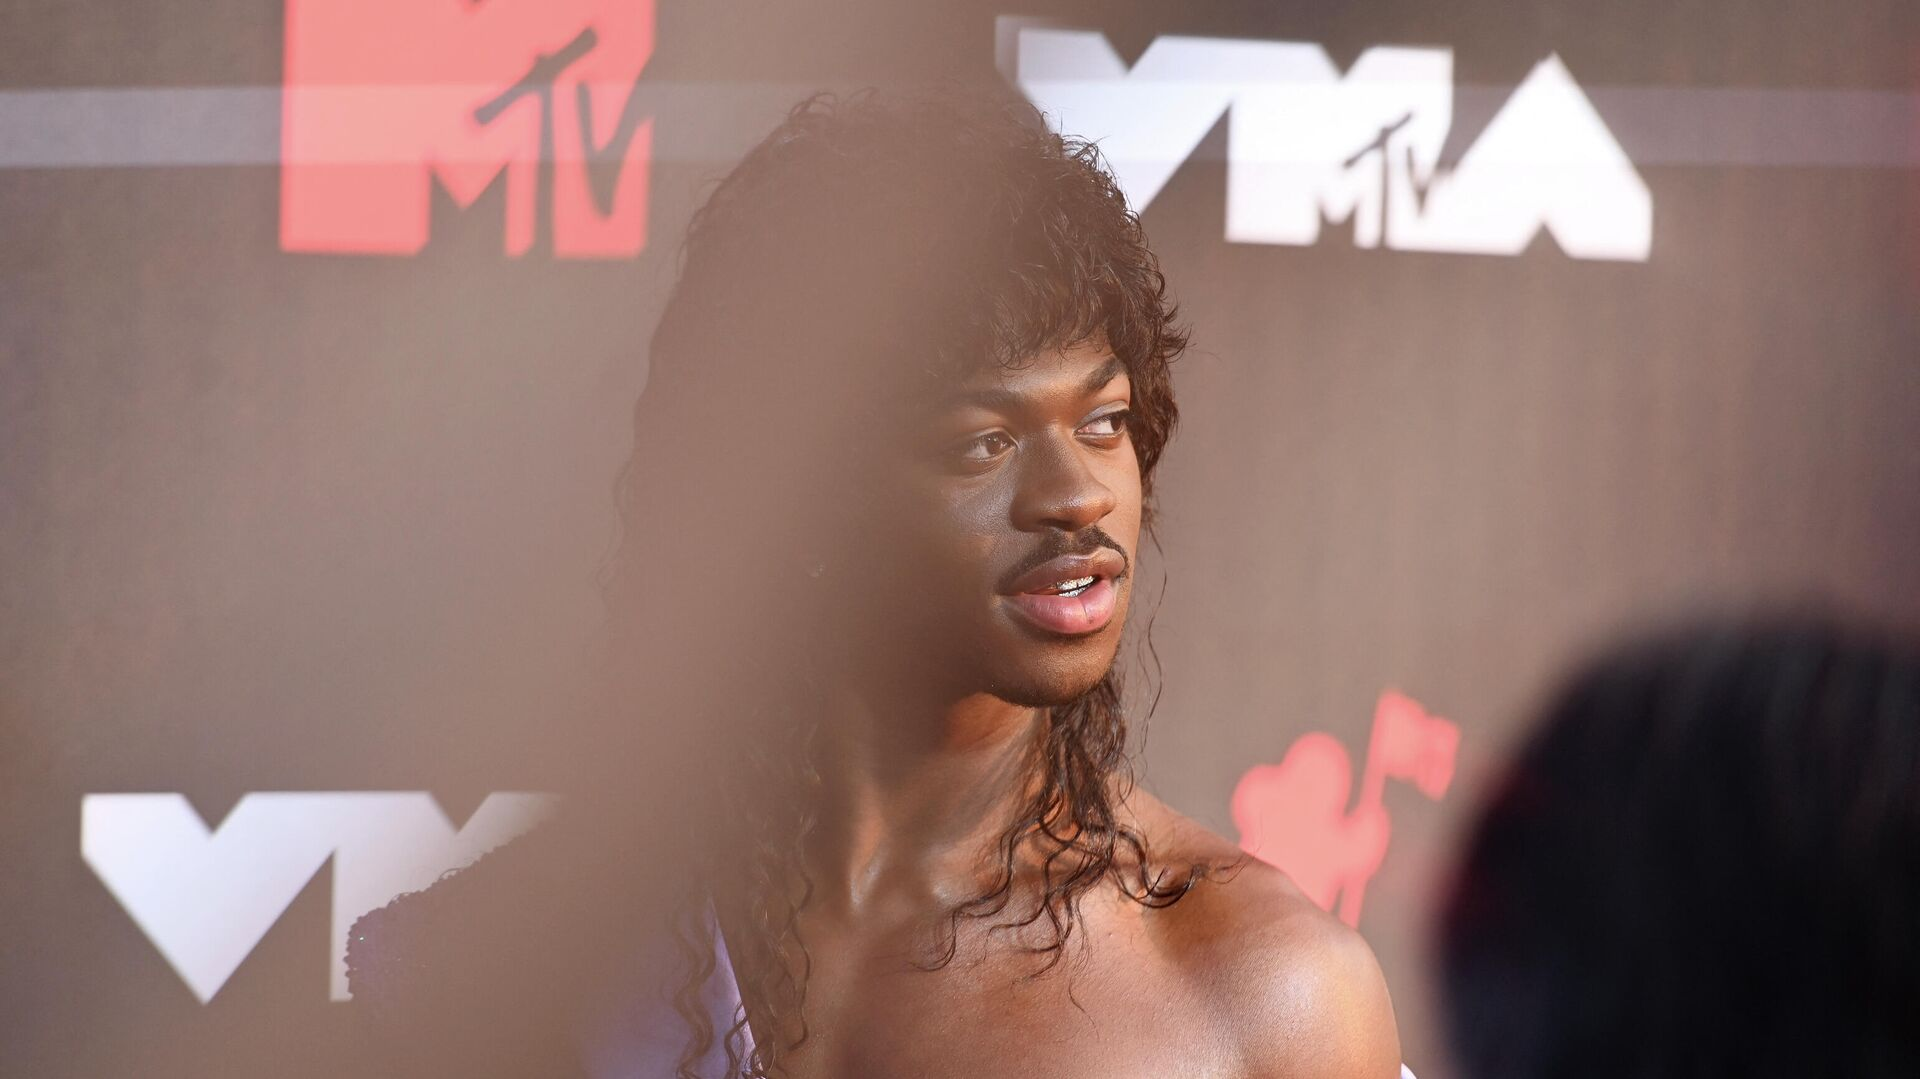 Lil Nas X attends the 2021 MTV Video Music Awards at Barclays Center on September 12, 2021 in the Brooklyn borough of New York City - Sputnik International, 1920, 13.09.2021